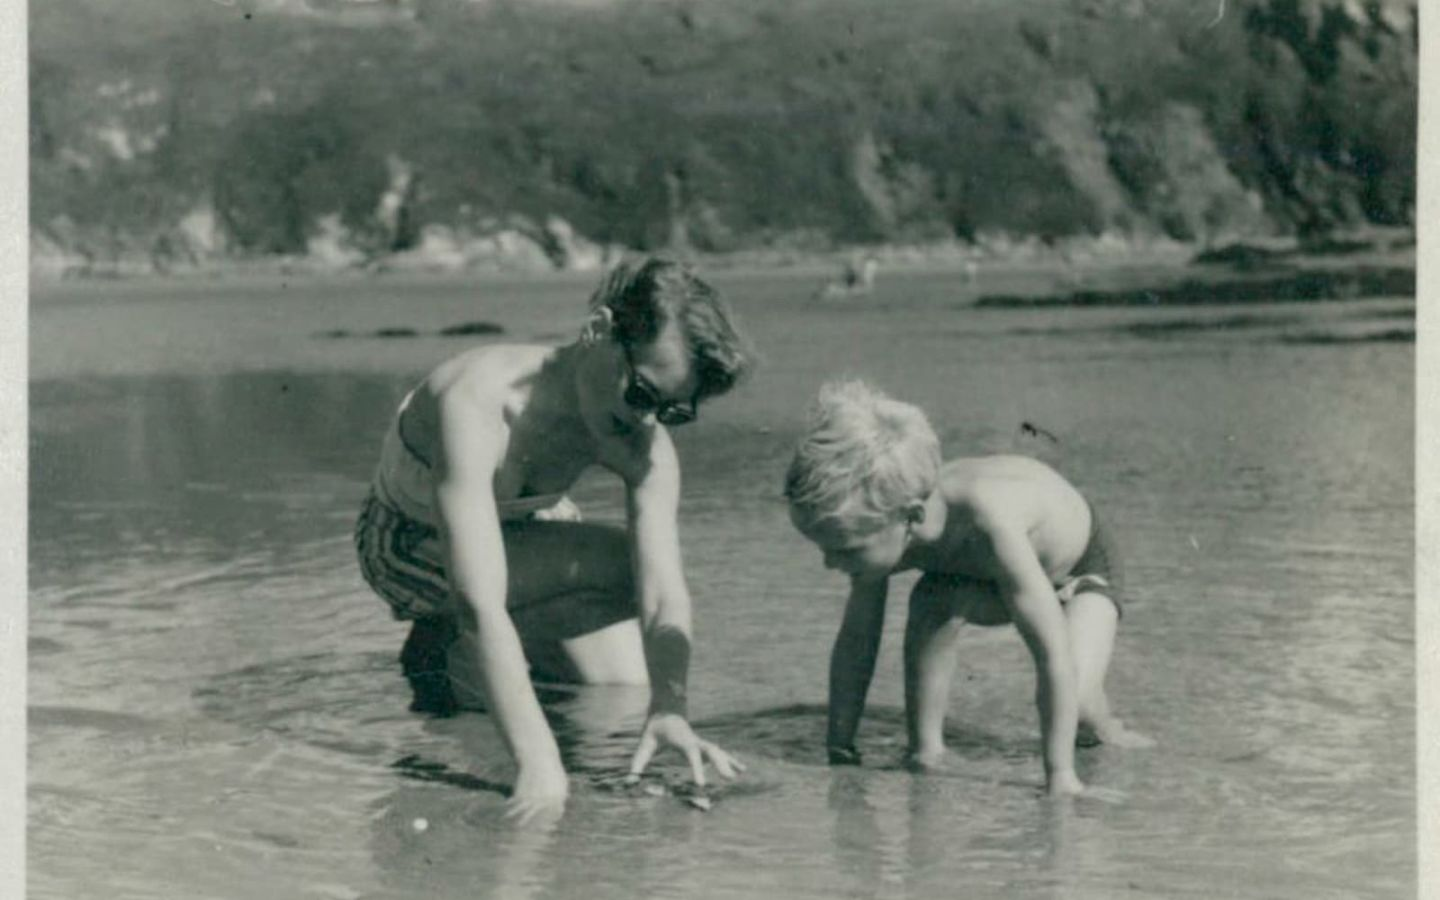 An old photo of Richard Branson playing in water with his mother Eve Branson